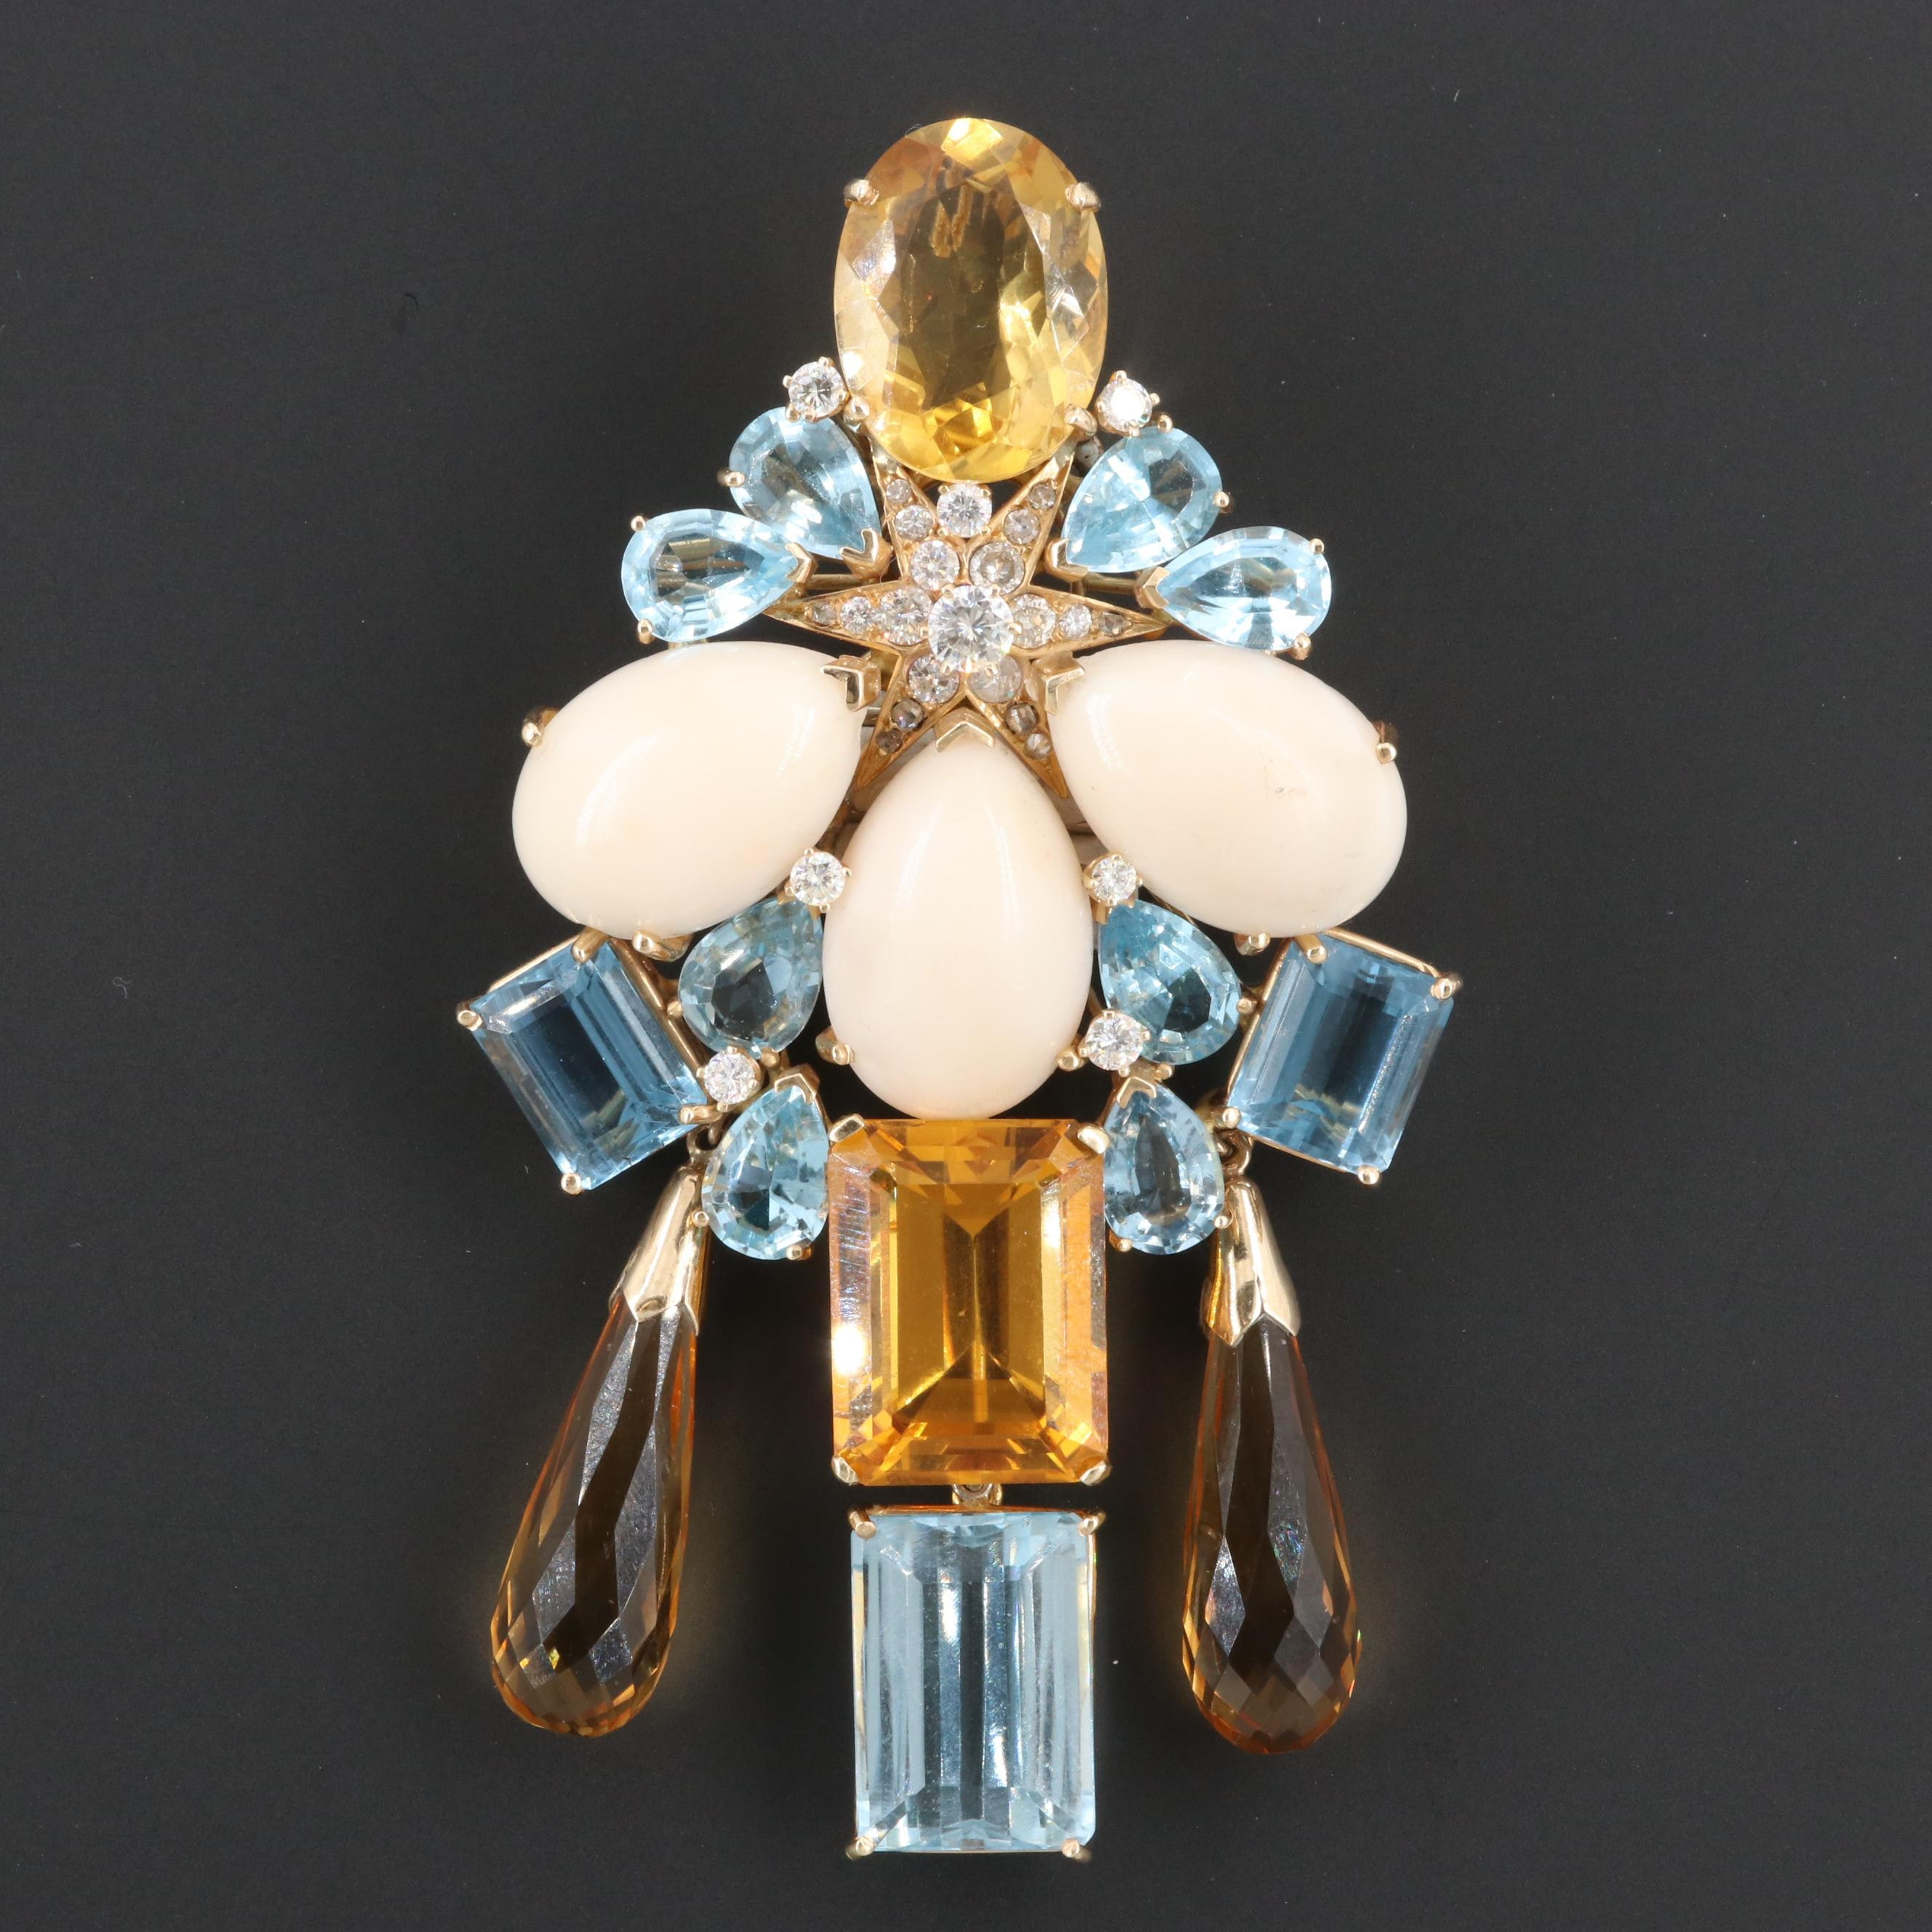 14K Yellow Gold 1.89 CTW Diamond, Coral, Blue Topaz and Citrine Brooch